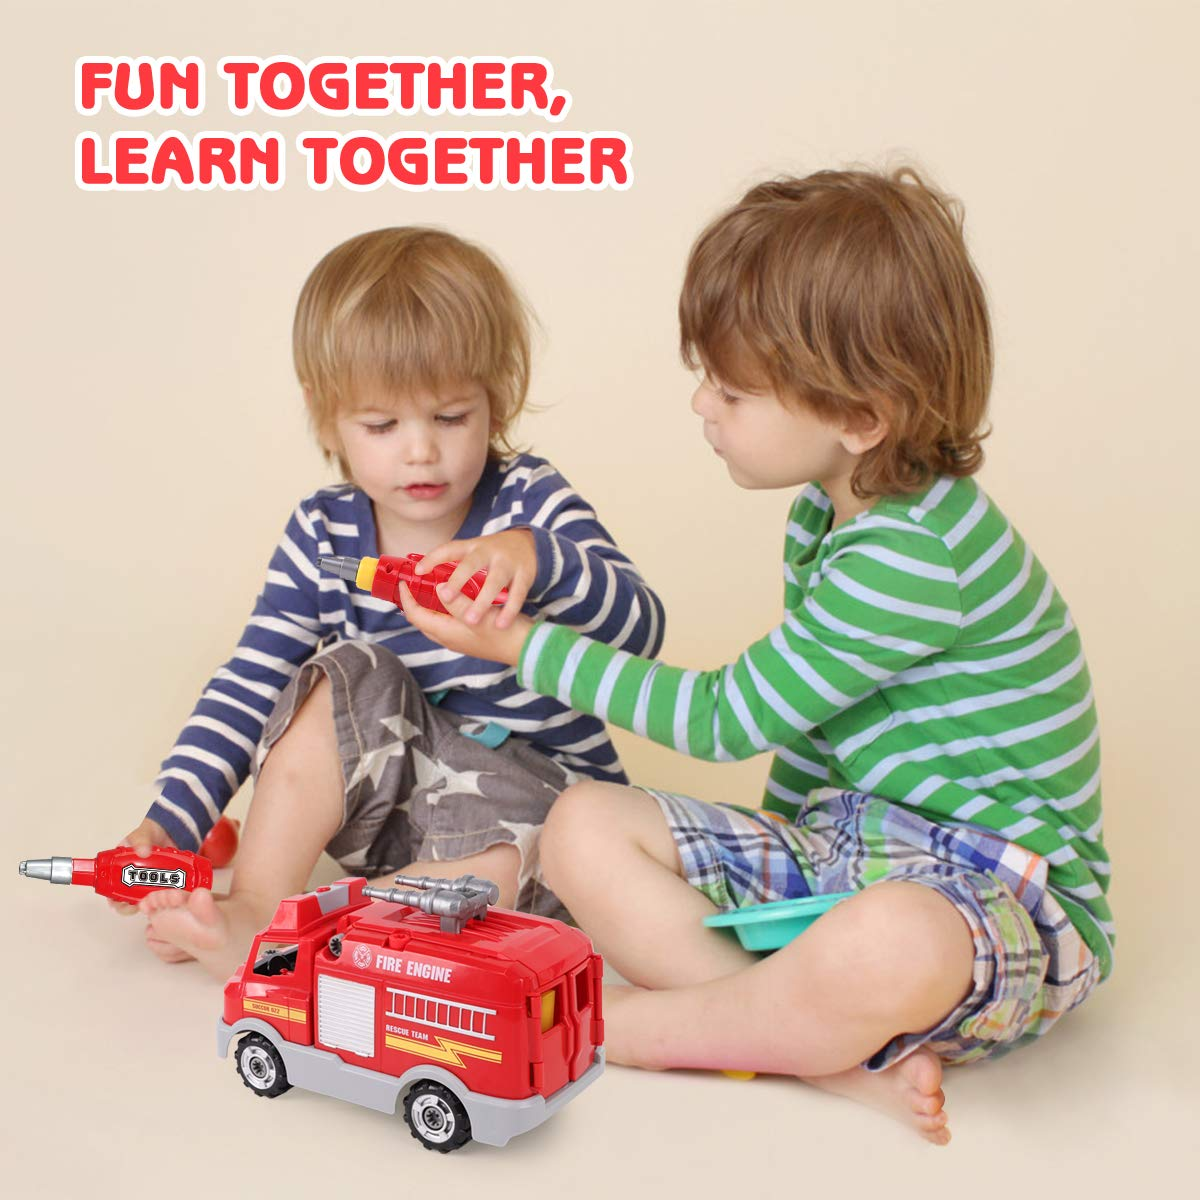 REMOKING STEM Learning Take Apart Toy for Boys & Girls, Build Your Own Car Toy Fire Truck Educational Playset with Tools and Power Drill, DIY Assembly Car with Realistic Sounds & Lights (3+ Ages) by REMOKING (Image #6)